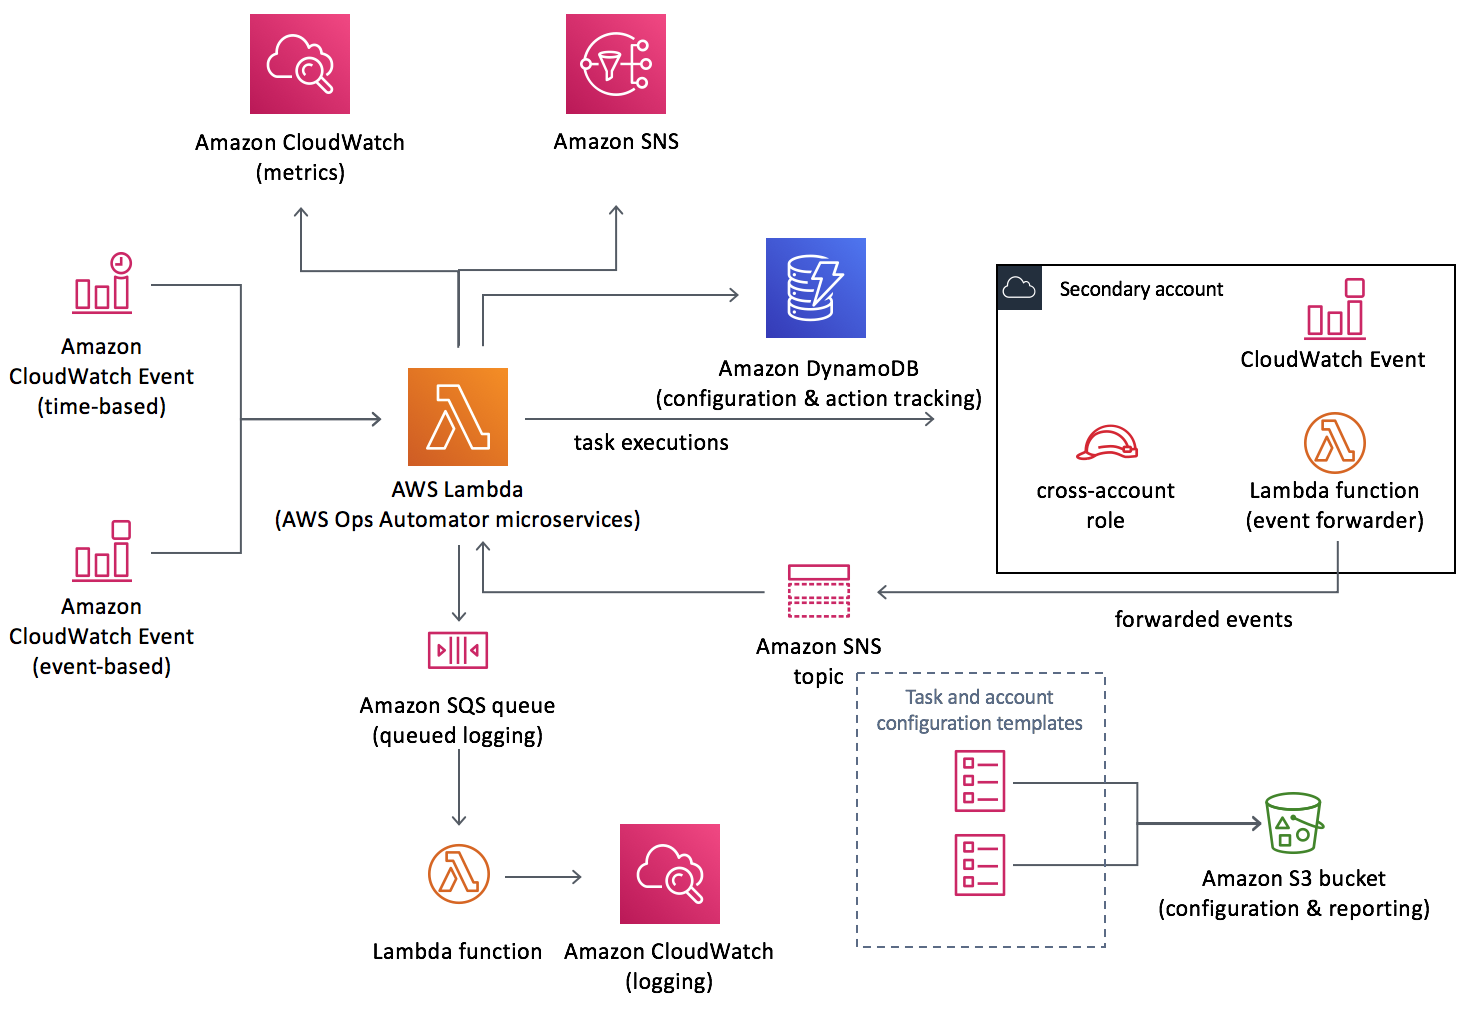 AWS Ops Automator | Architecture Diagram